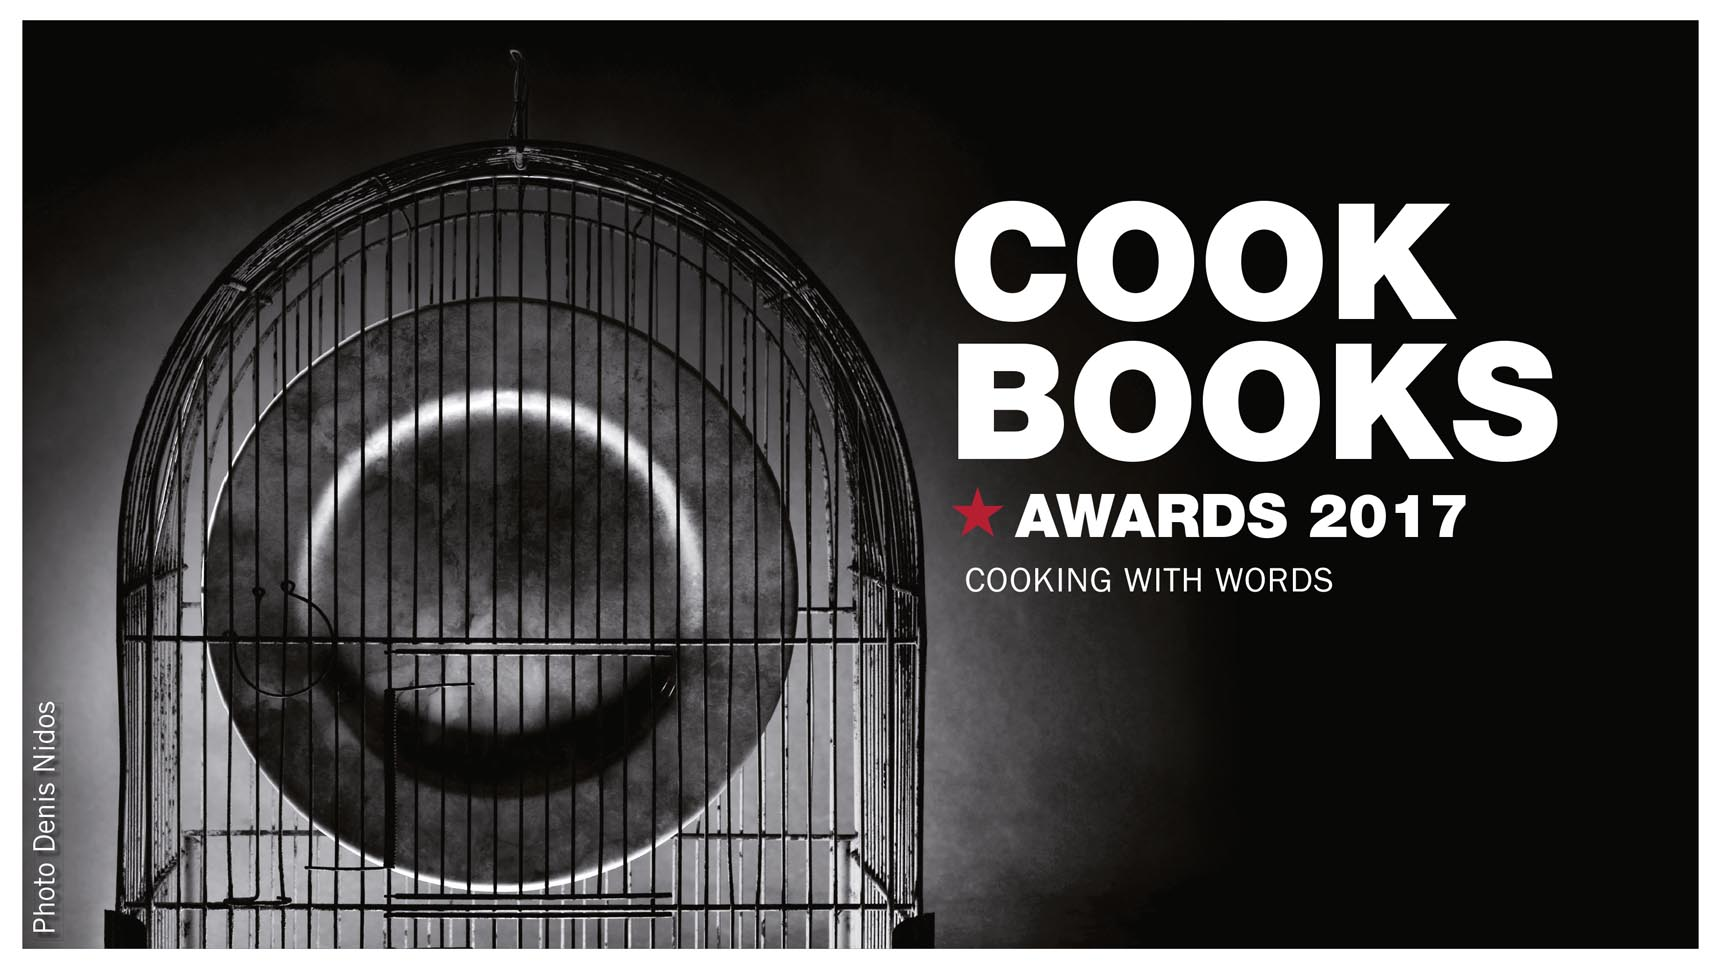 gourmand cookbook awards winners 2017